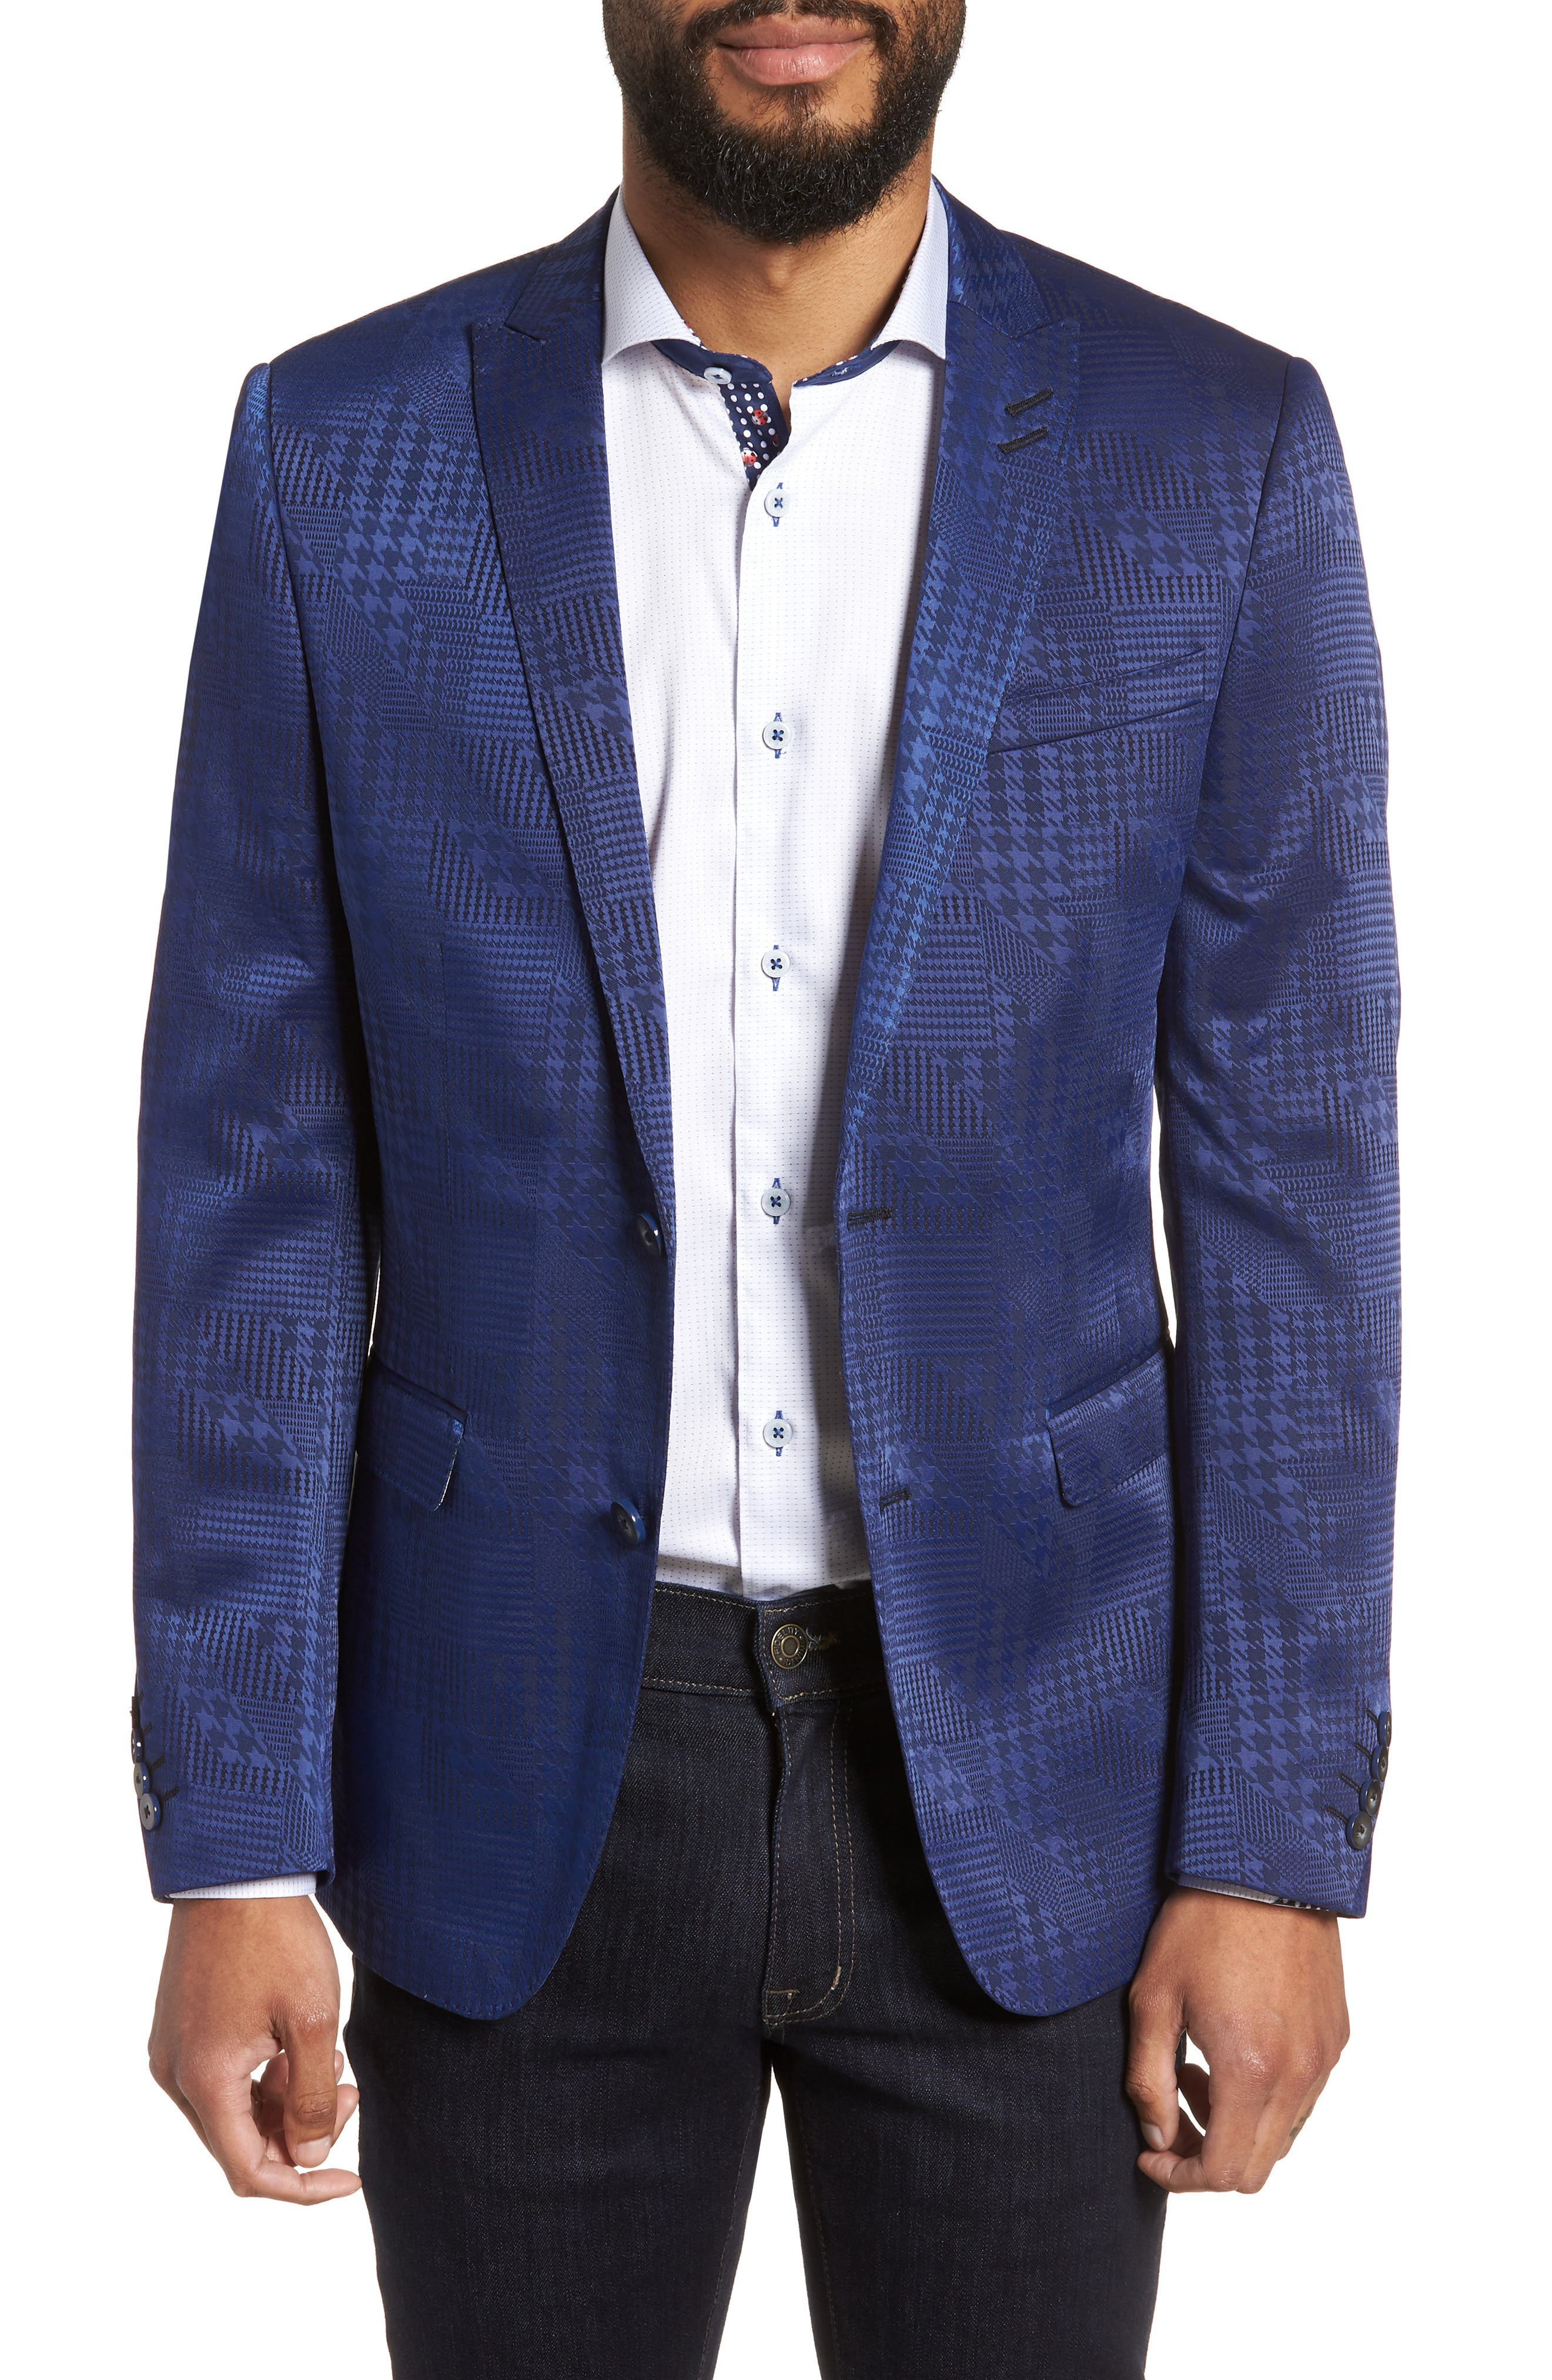 Descartes Patch Houndstooth Sport Coat,                             Main thumbnail 1, color,                             420